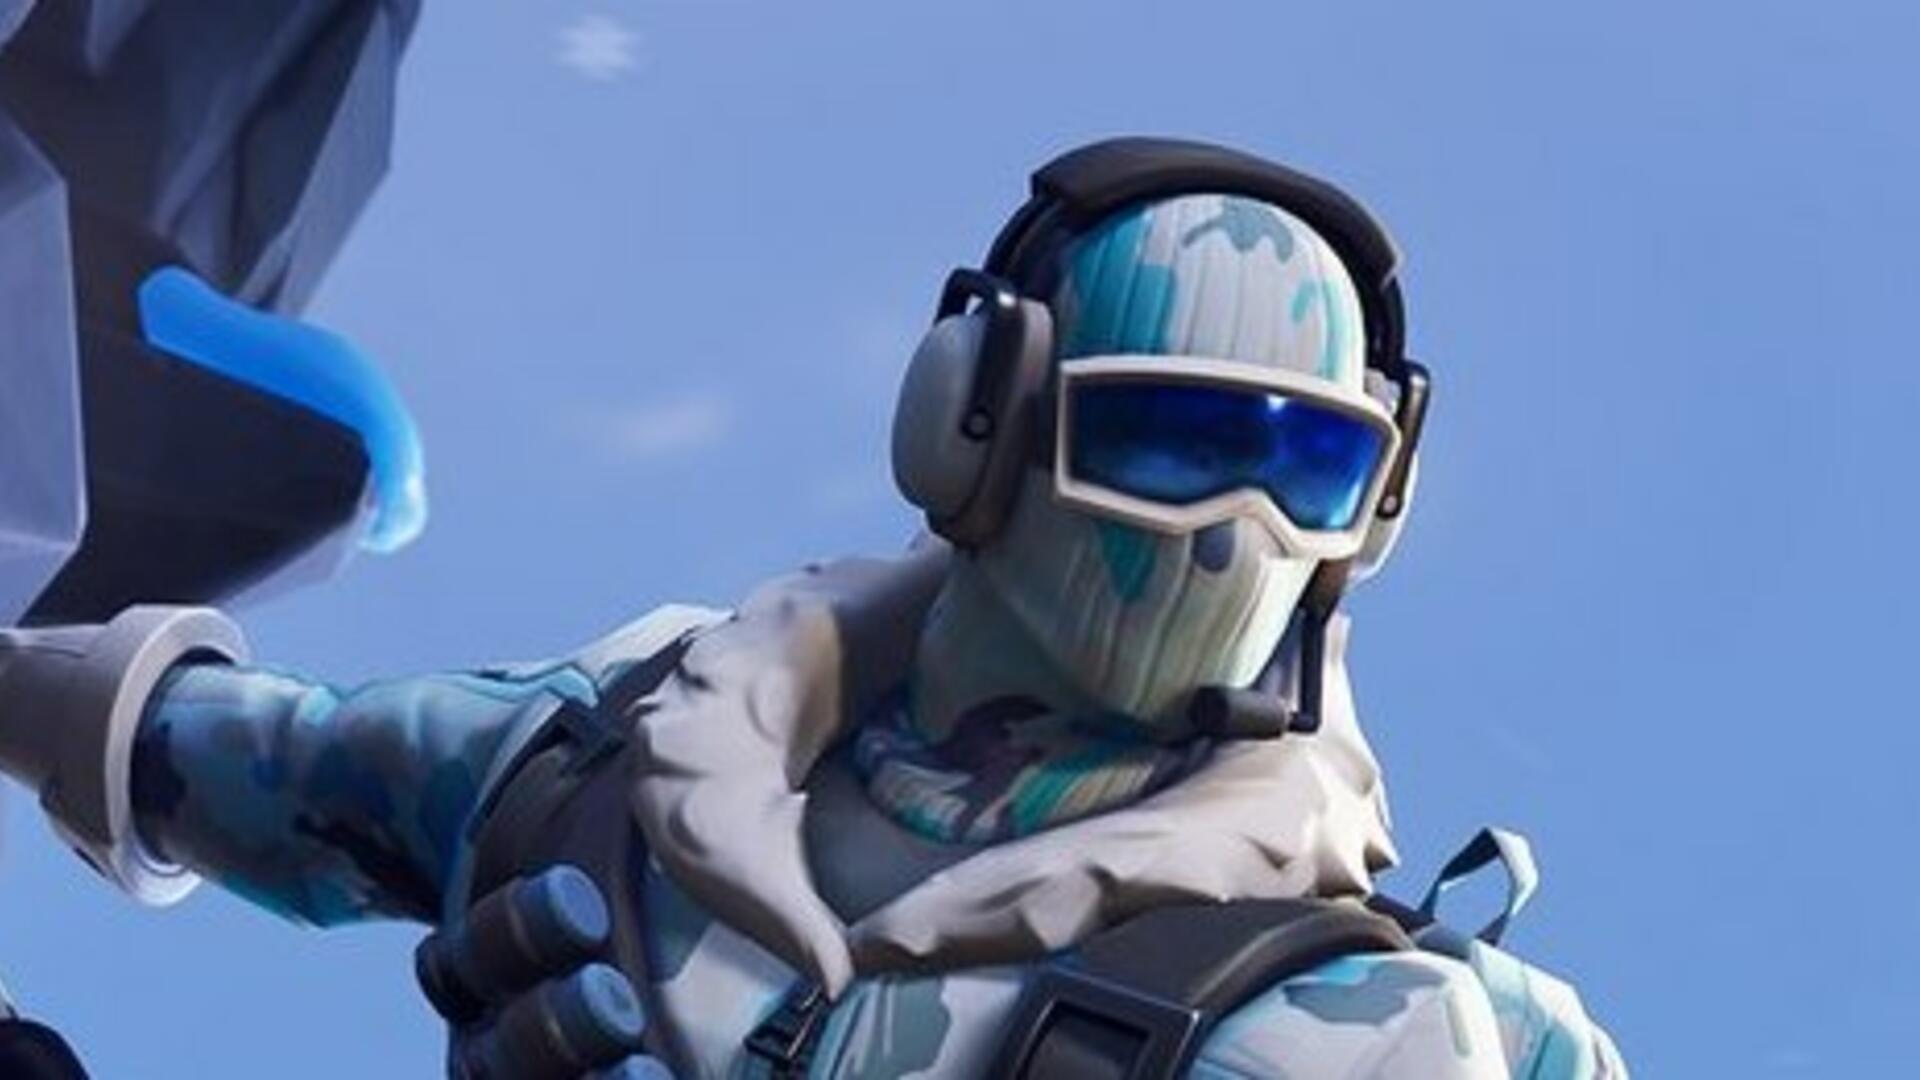 Fortnite Week 6 Challenges - How to Complete all Season 7, Week 6 Battle Pass Challenges